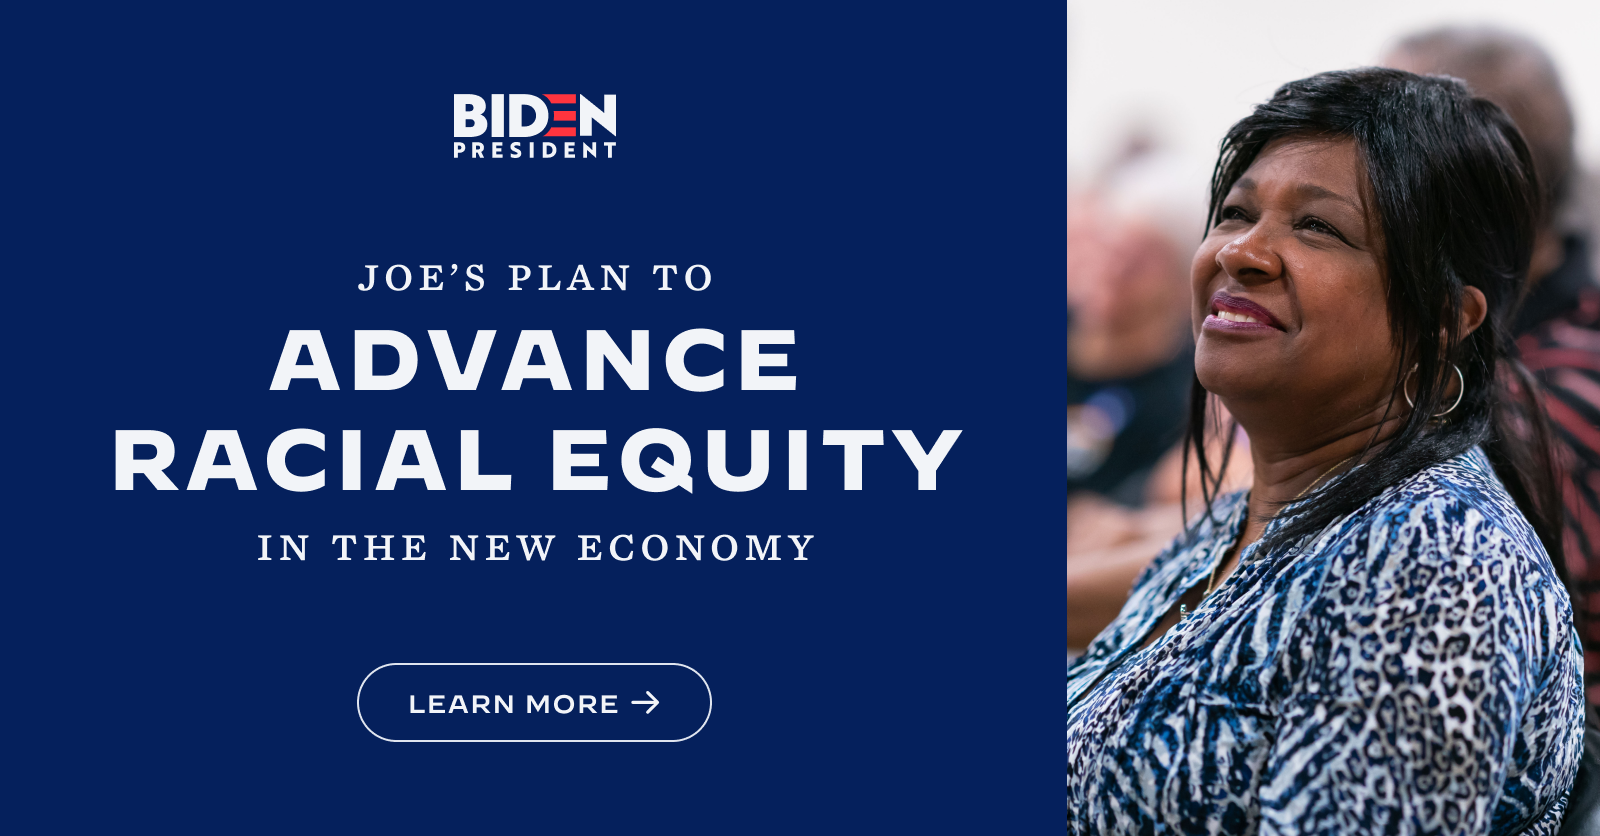 The Biden Plan to Build Back Better by Advancing Racial Equity Across the American Economy | Joe Biden for President: Official Campaign Website